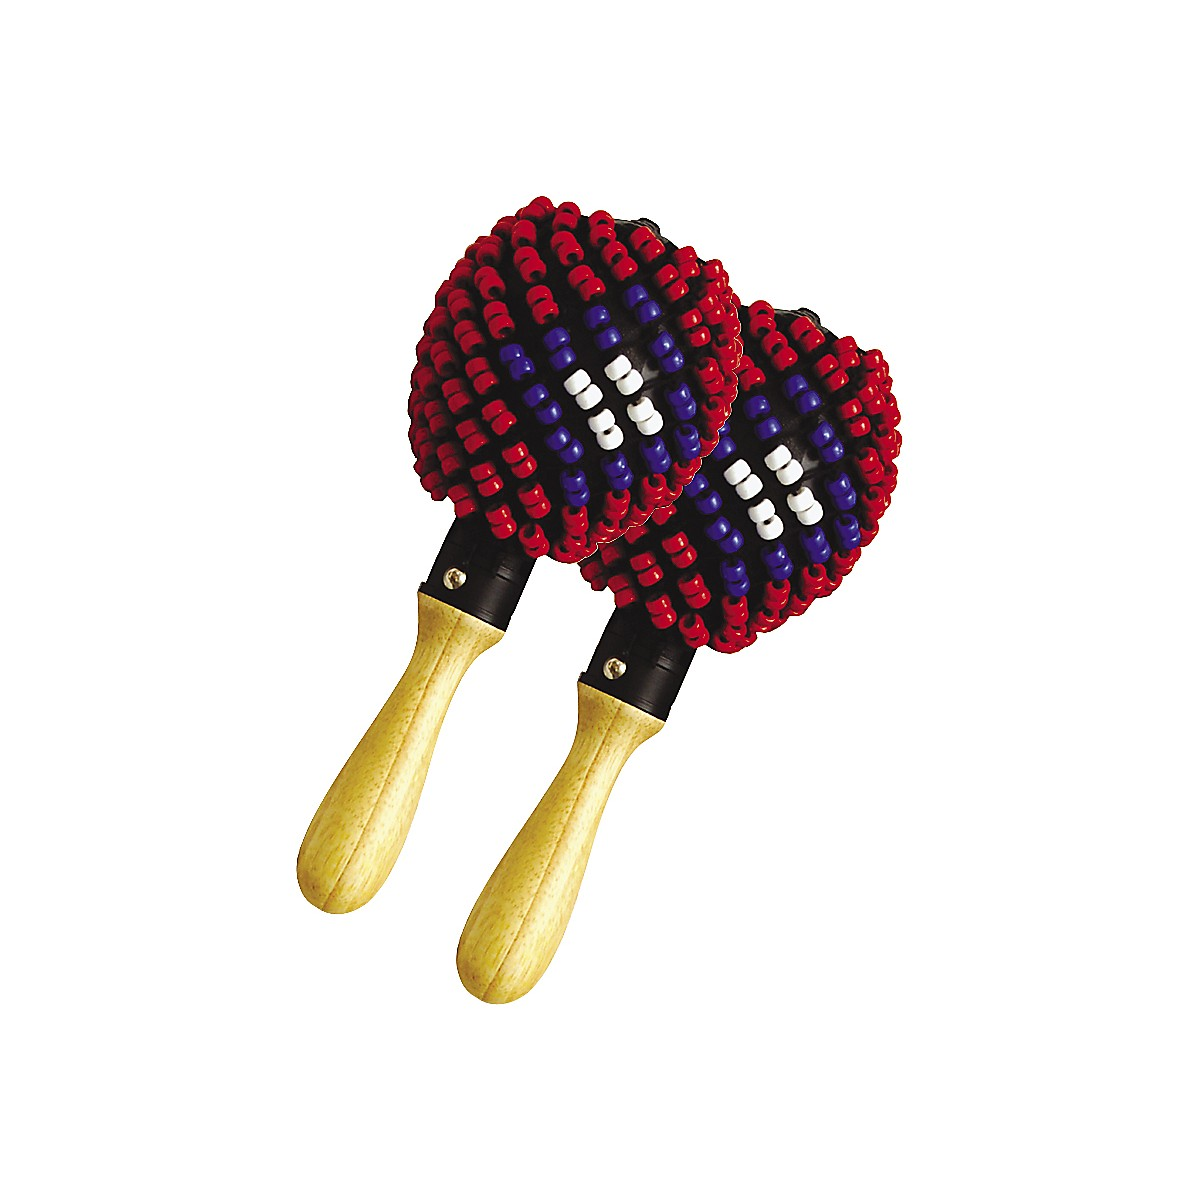 Tycoon Percussion Beaded Maracas